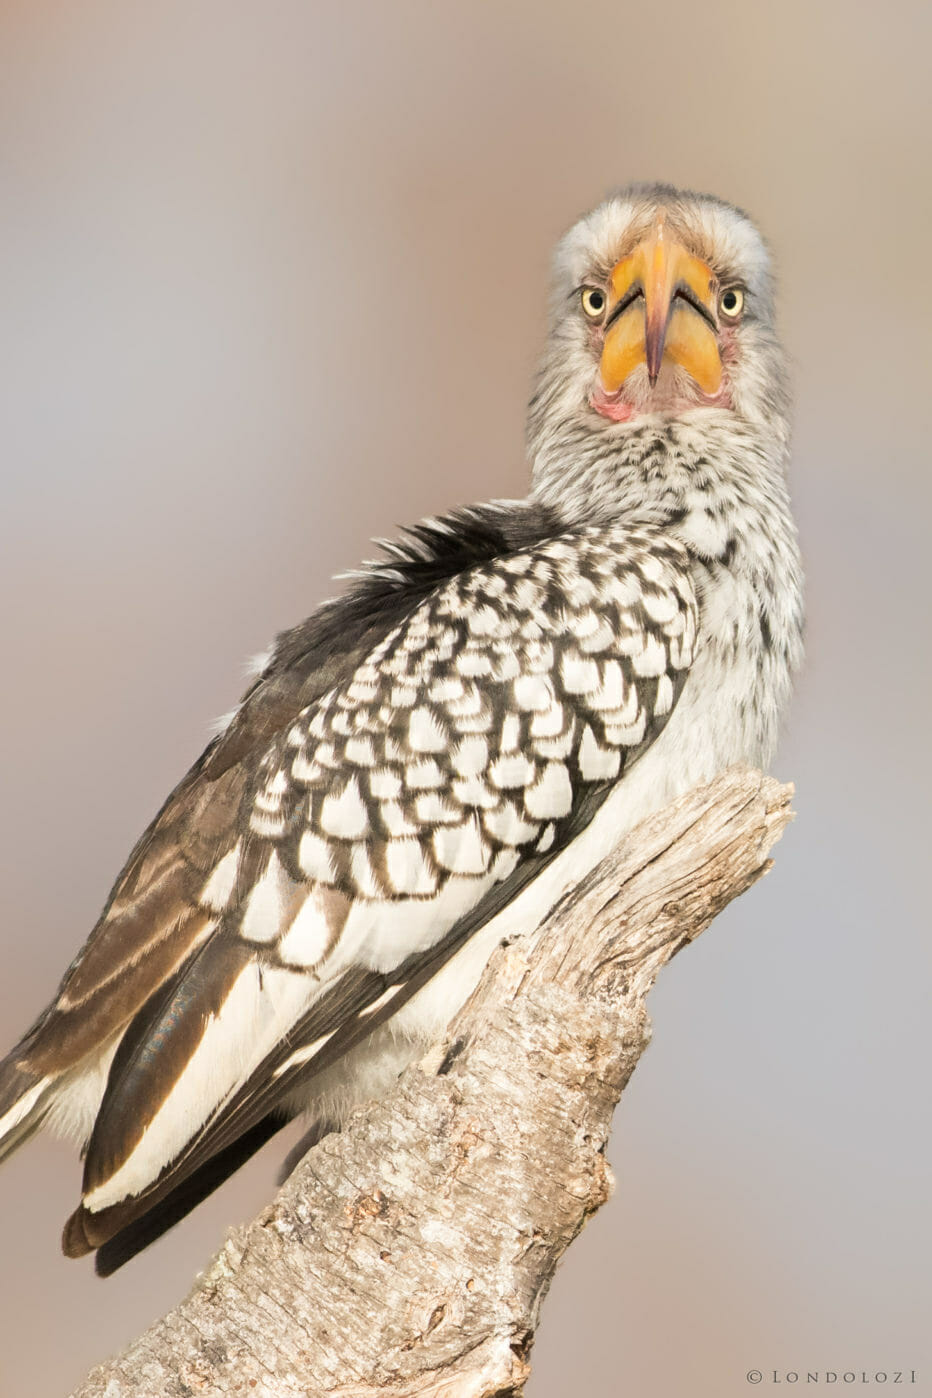 A Southern Yellow-billed Hornbill sits on a branch and looks towards the camera at Londolozi